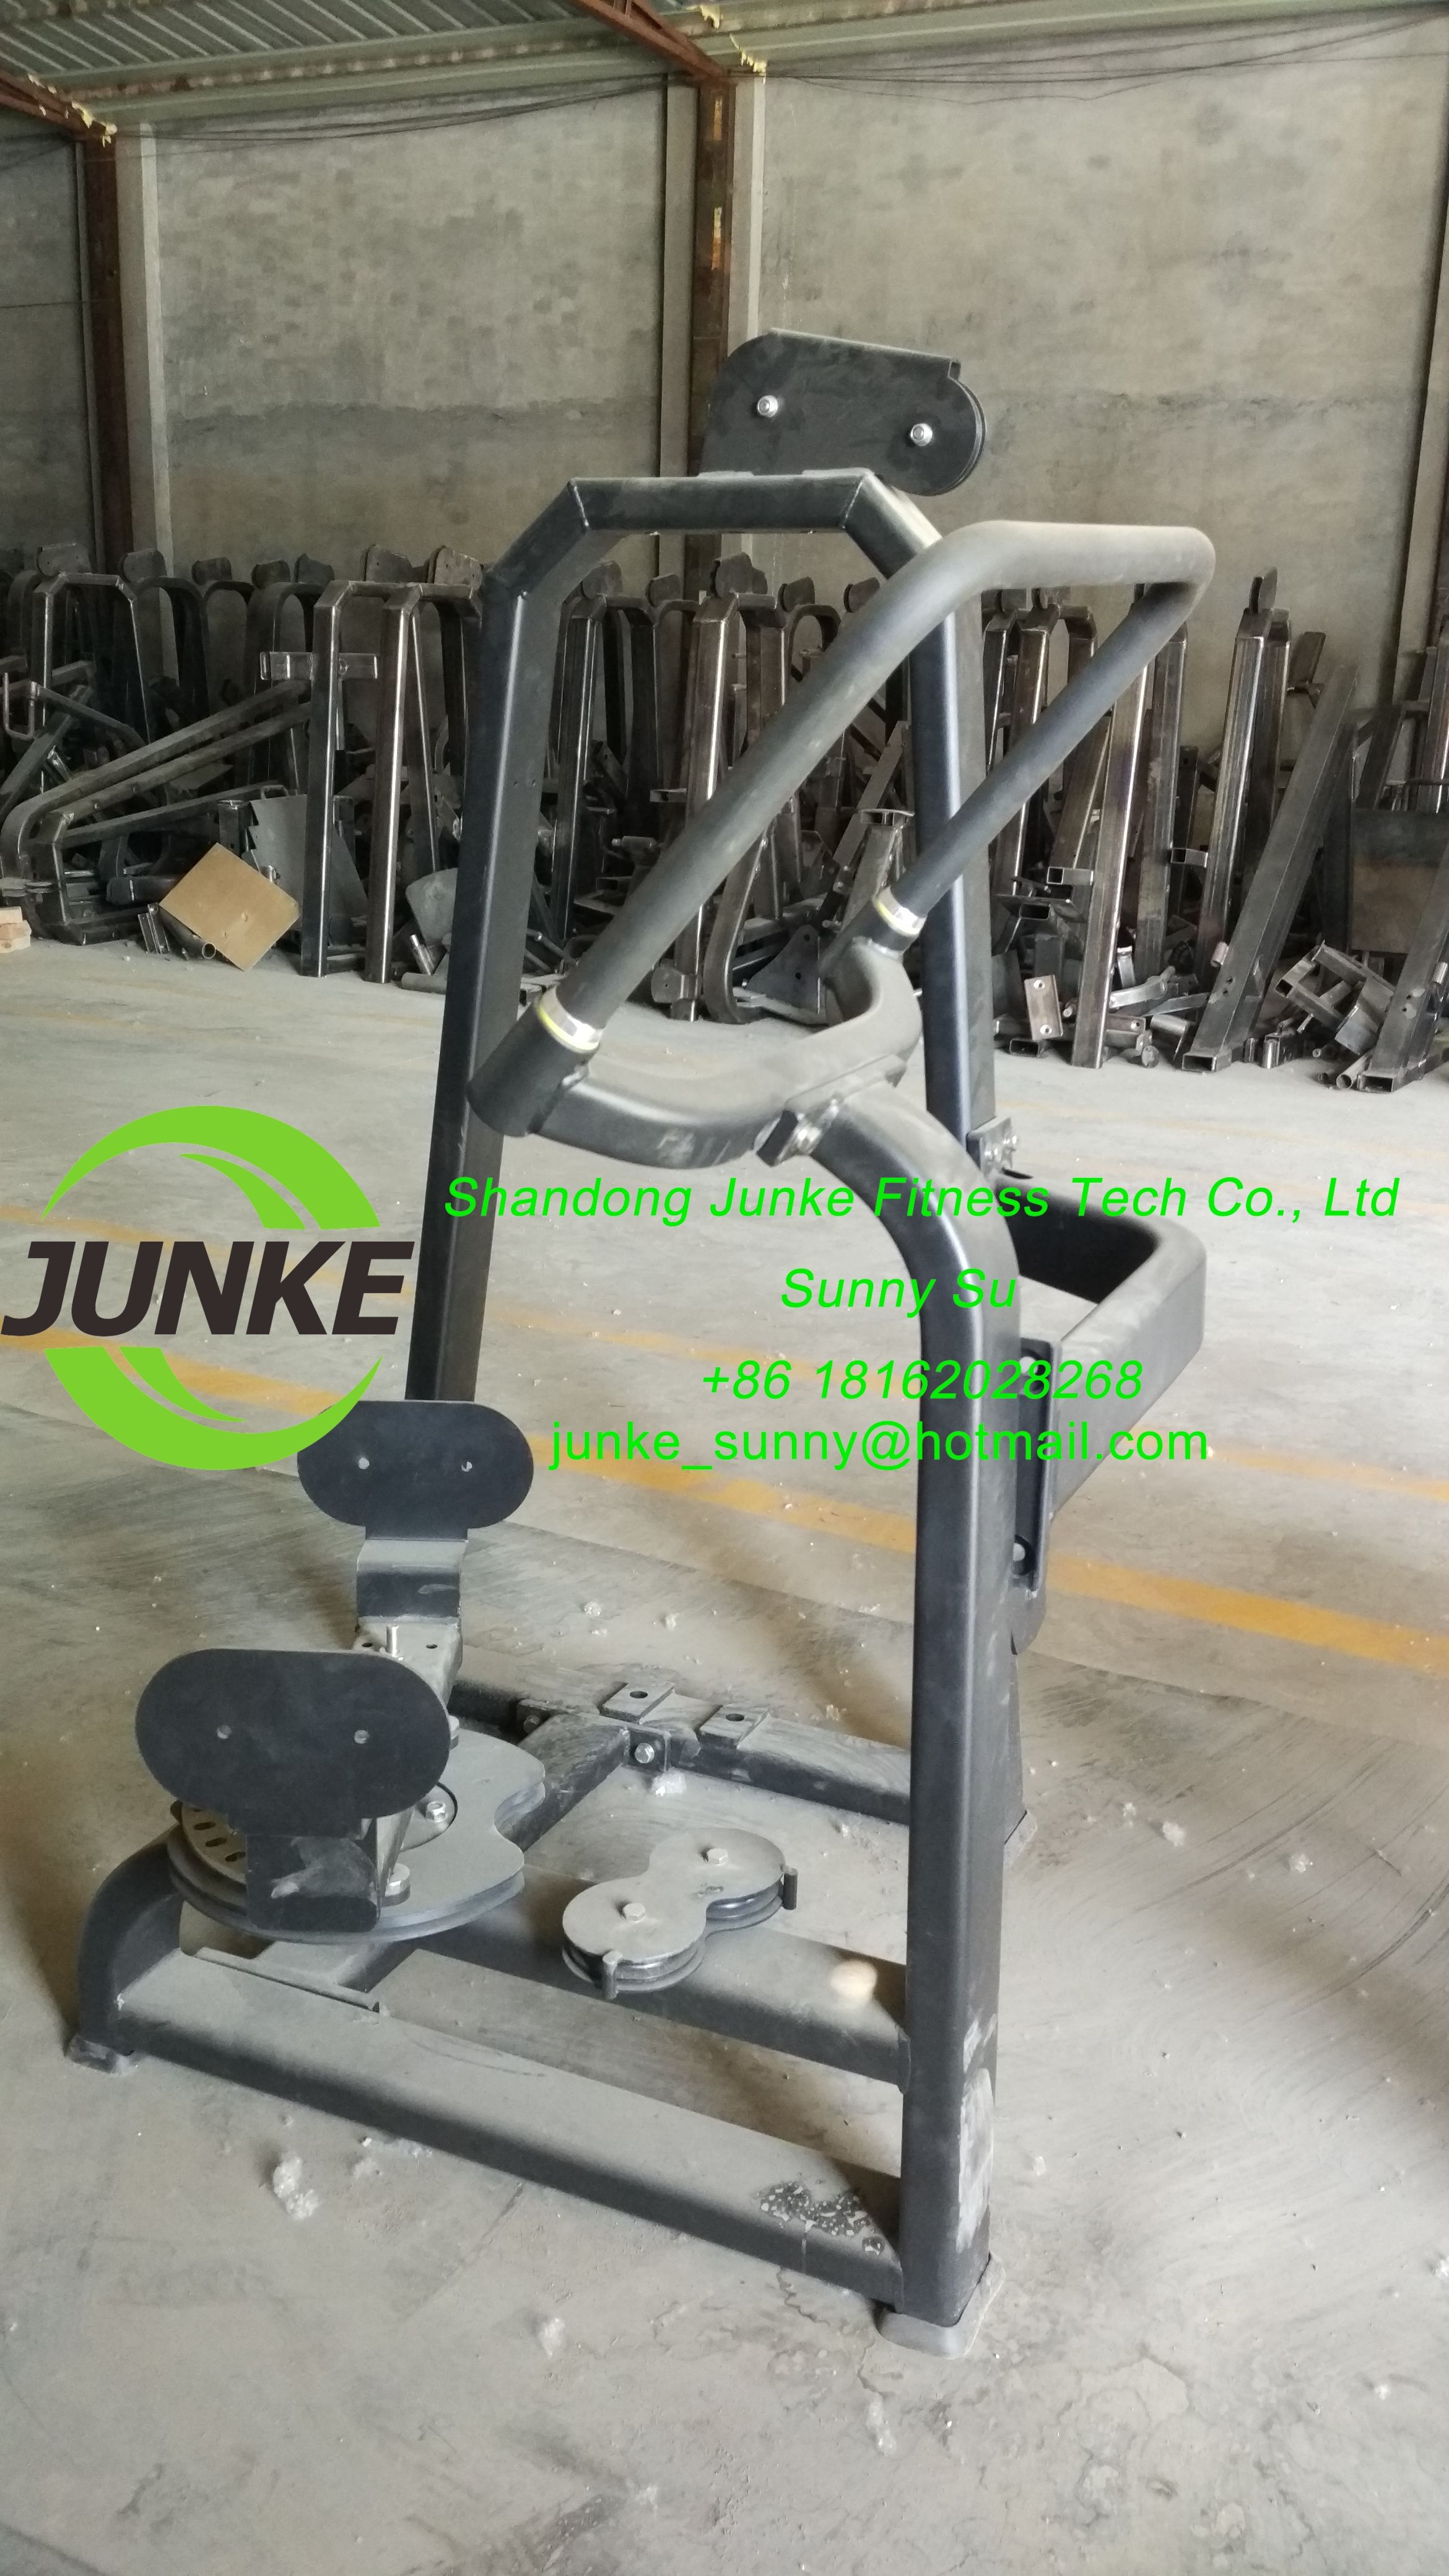 Best my gym images in gymnastics equipment fitness